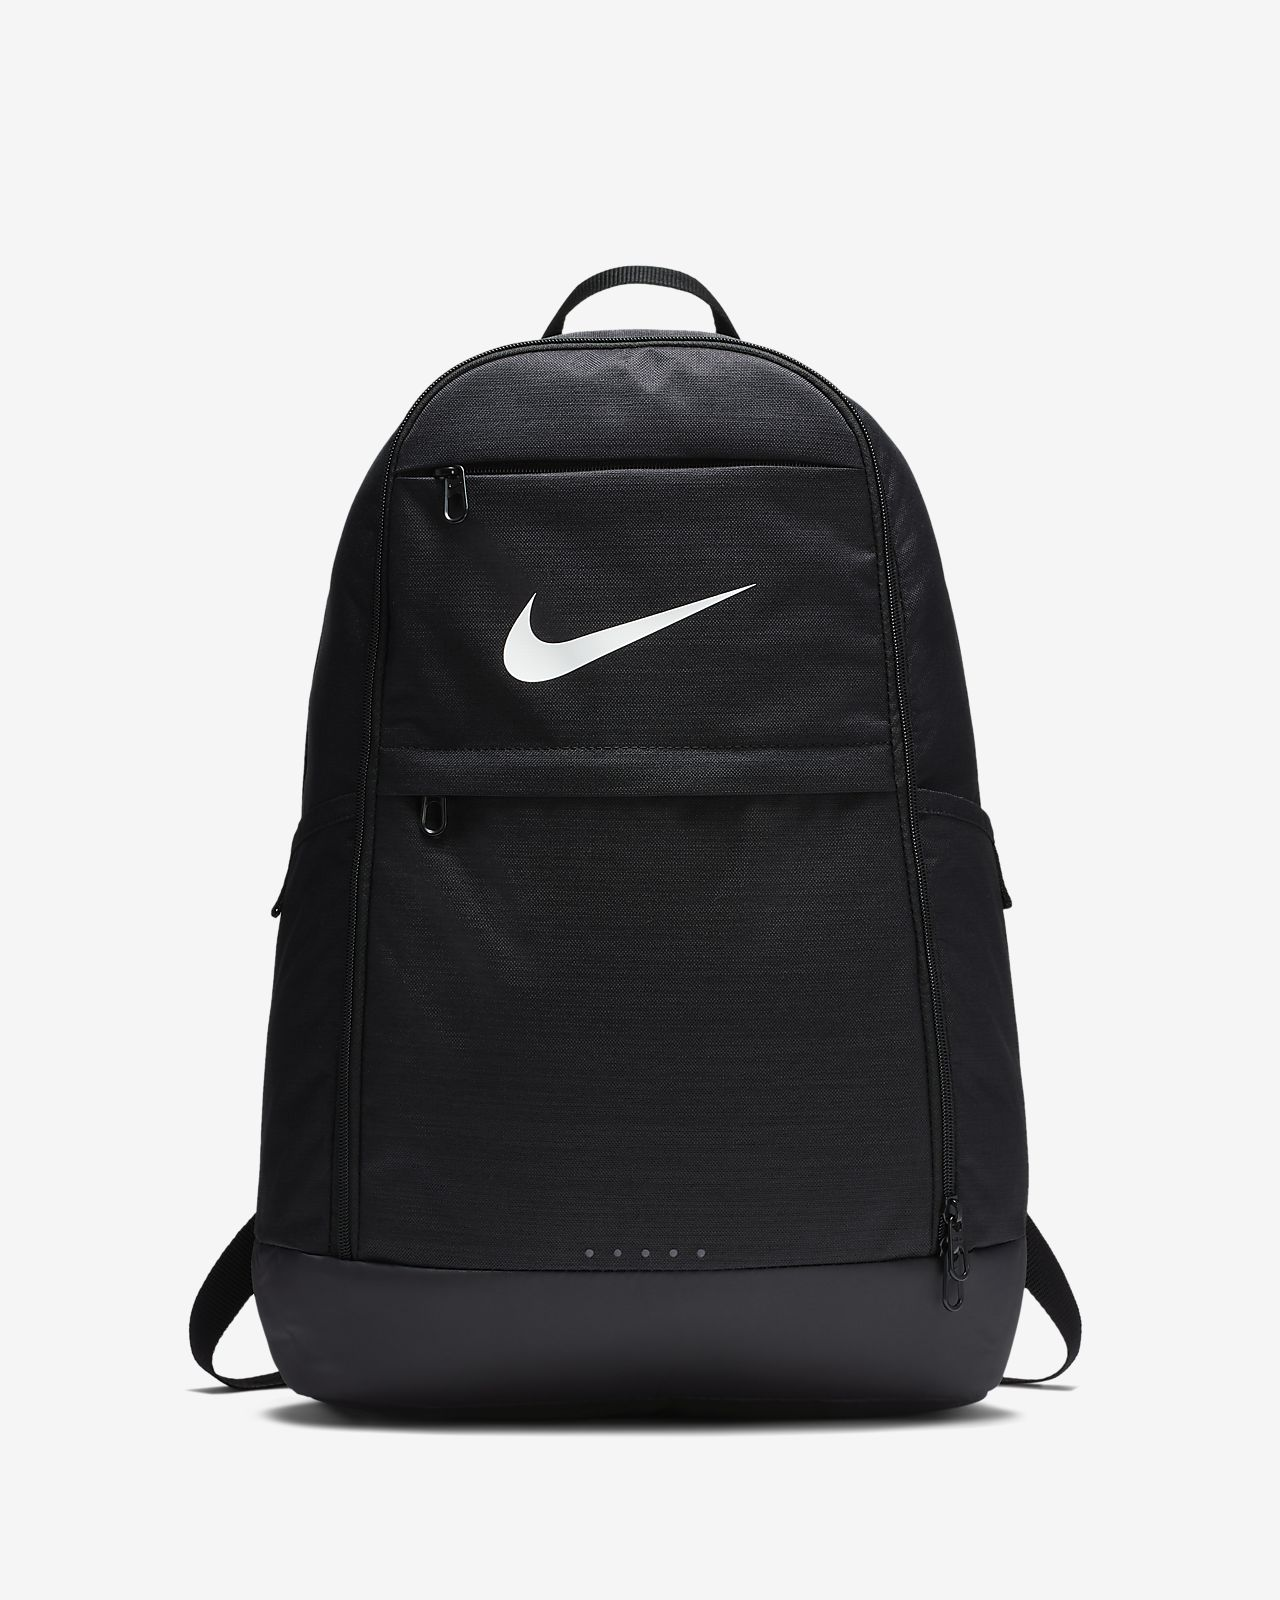 b9c02b72e271 Nike Brasilia Training Backpack (Extra Large). Nike.com AU